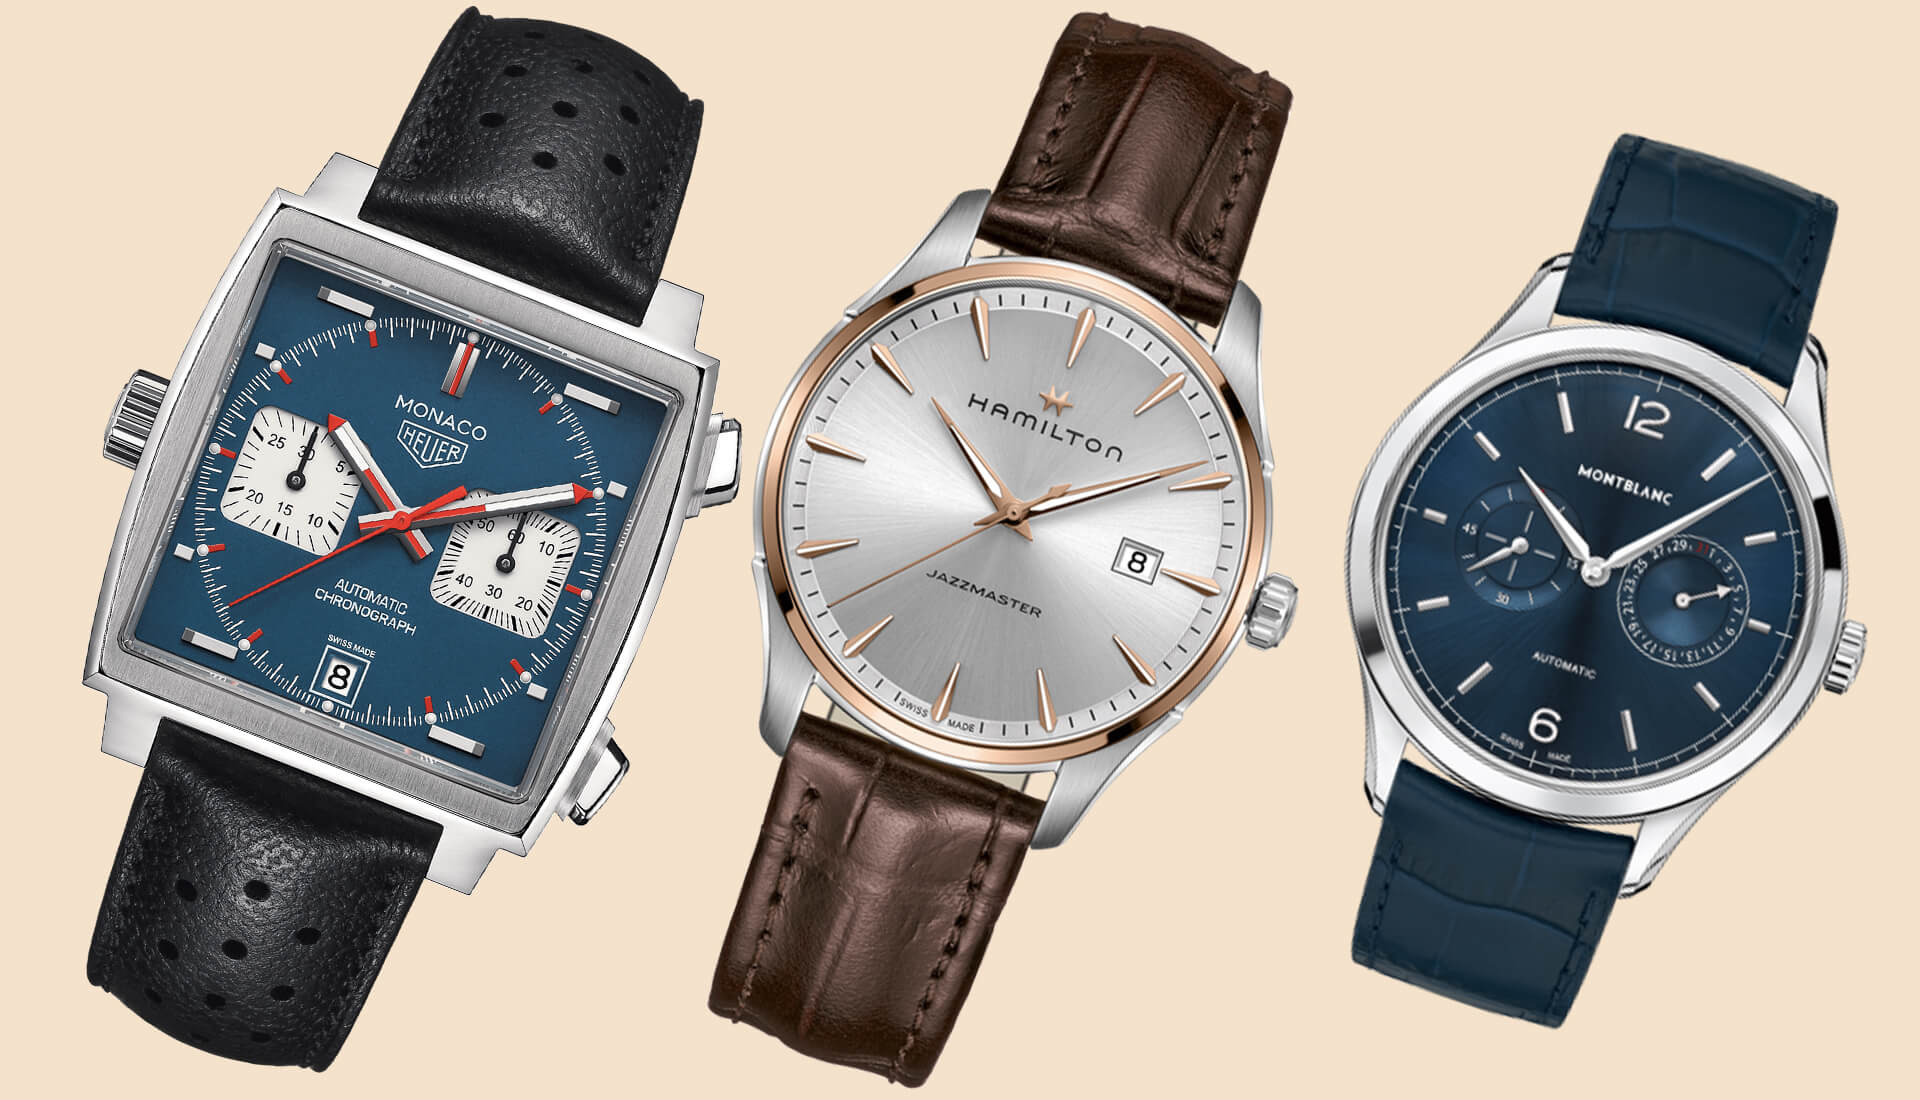 Watch 101: Can I Find a Good Watch in a Department Store?